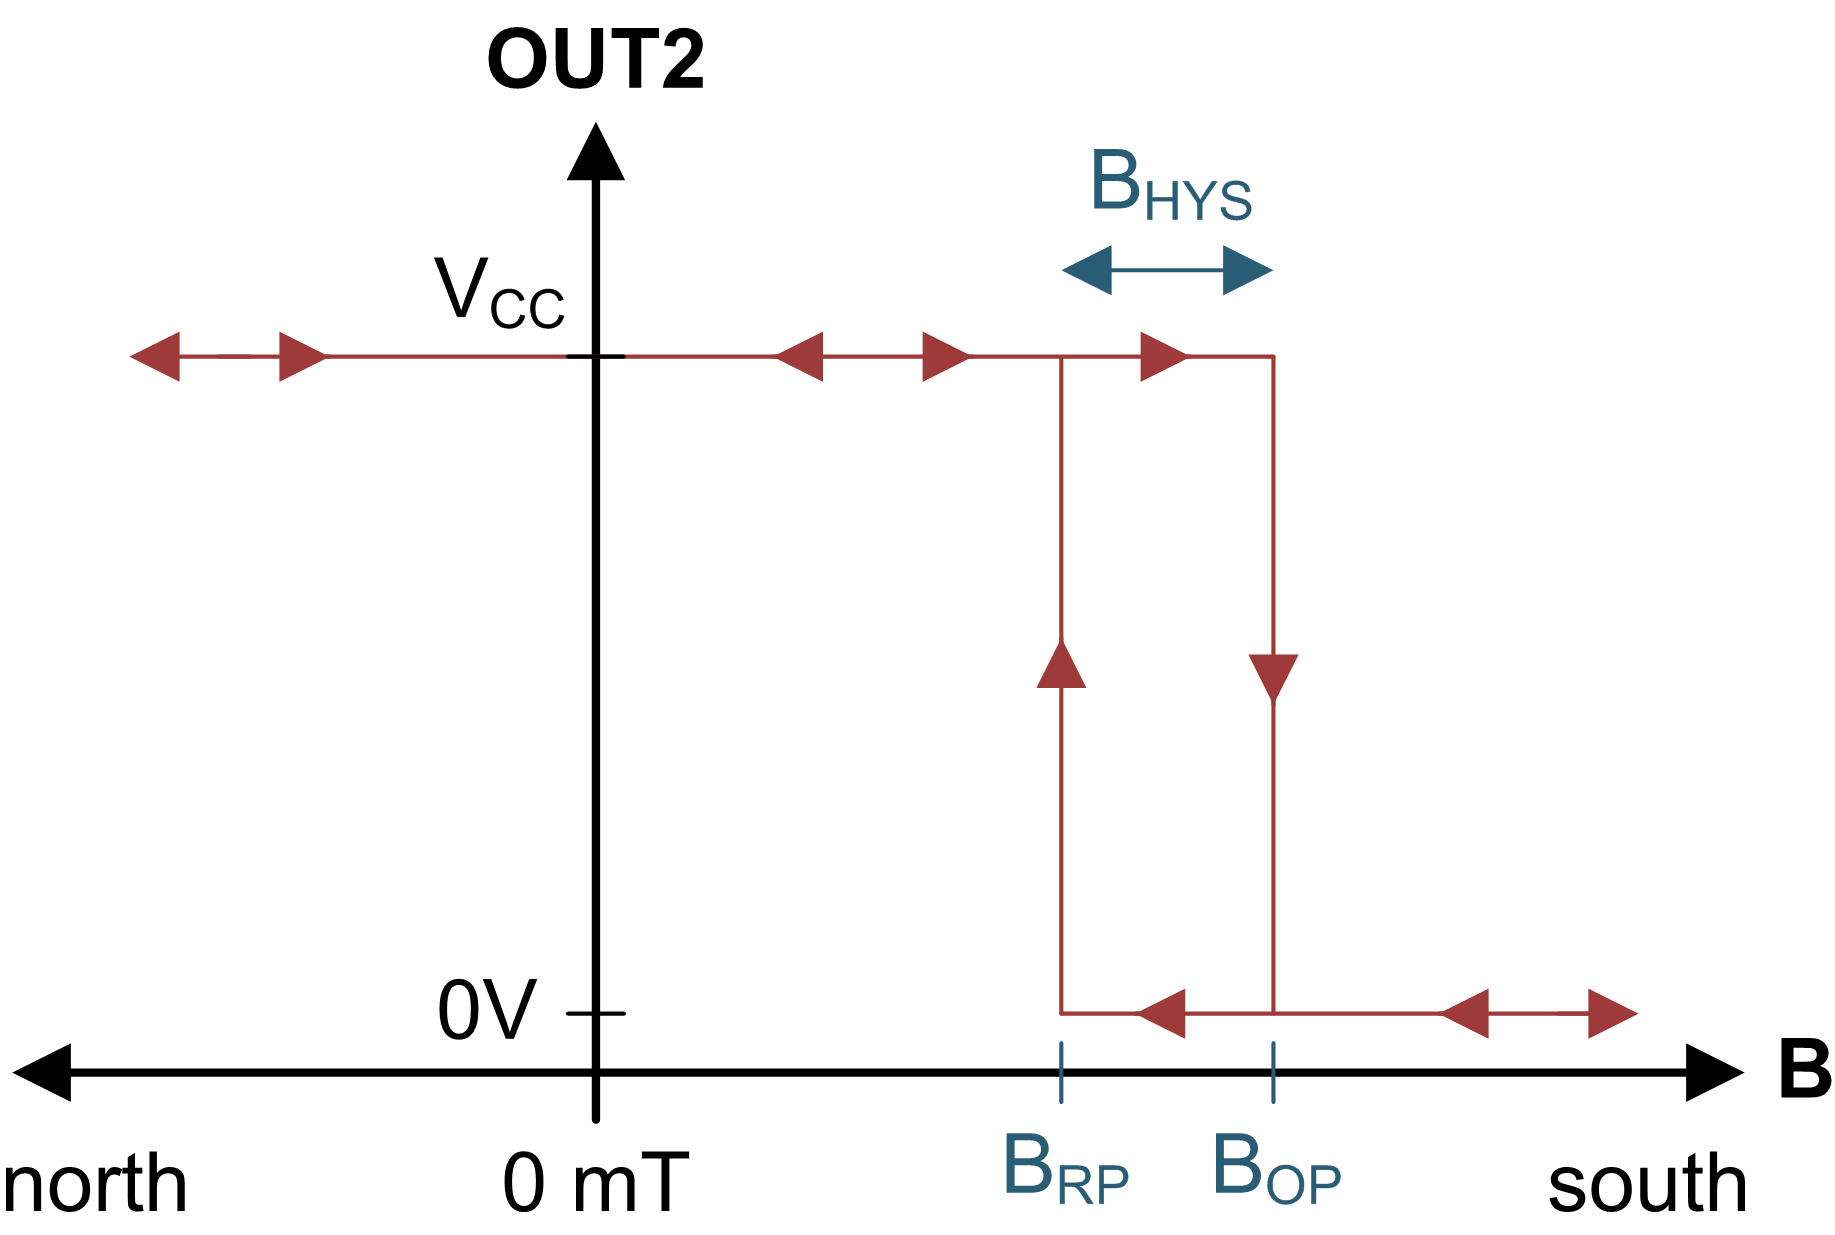 Figure 2: Hall effect switch output